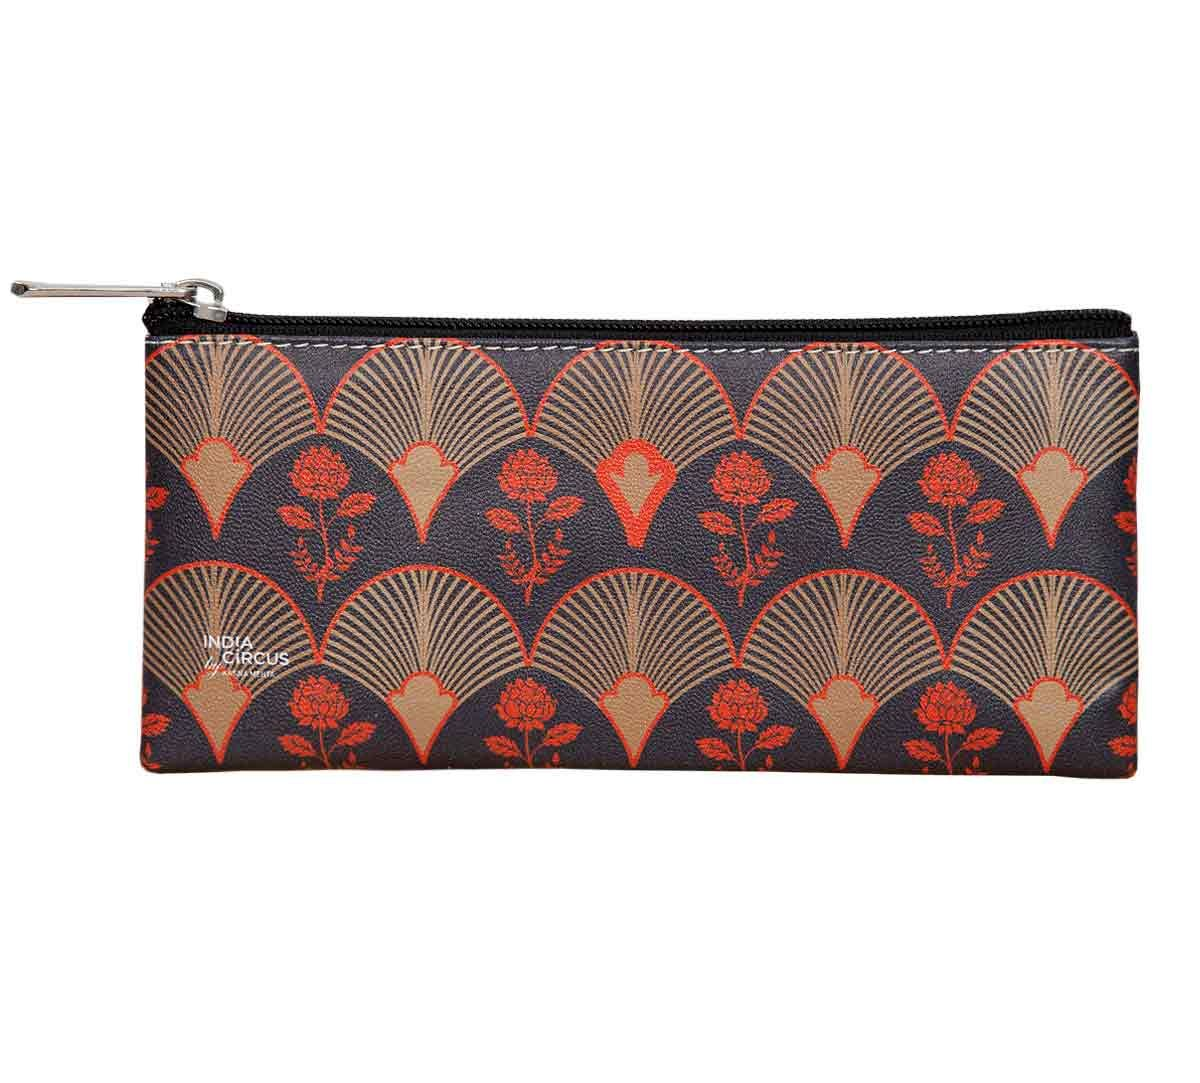 Fans of Blossom Small Utility Pouch